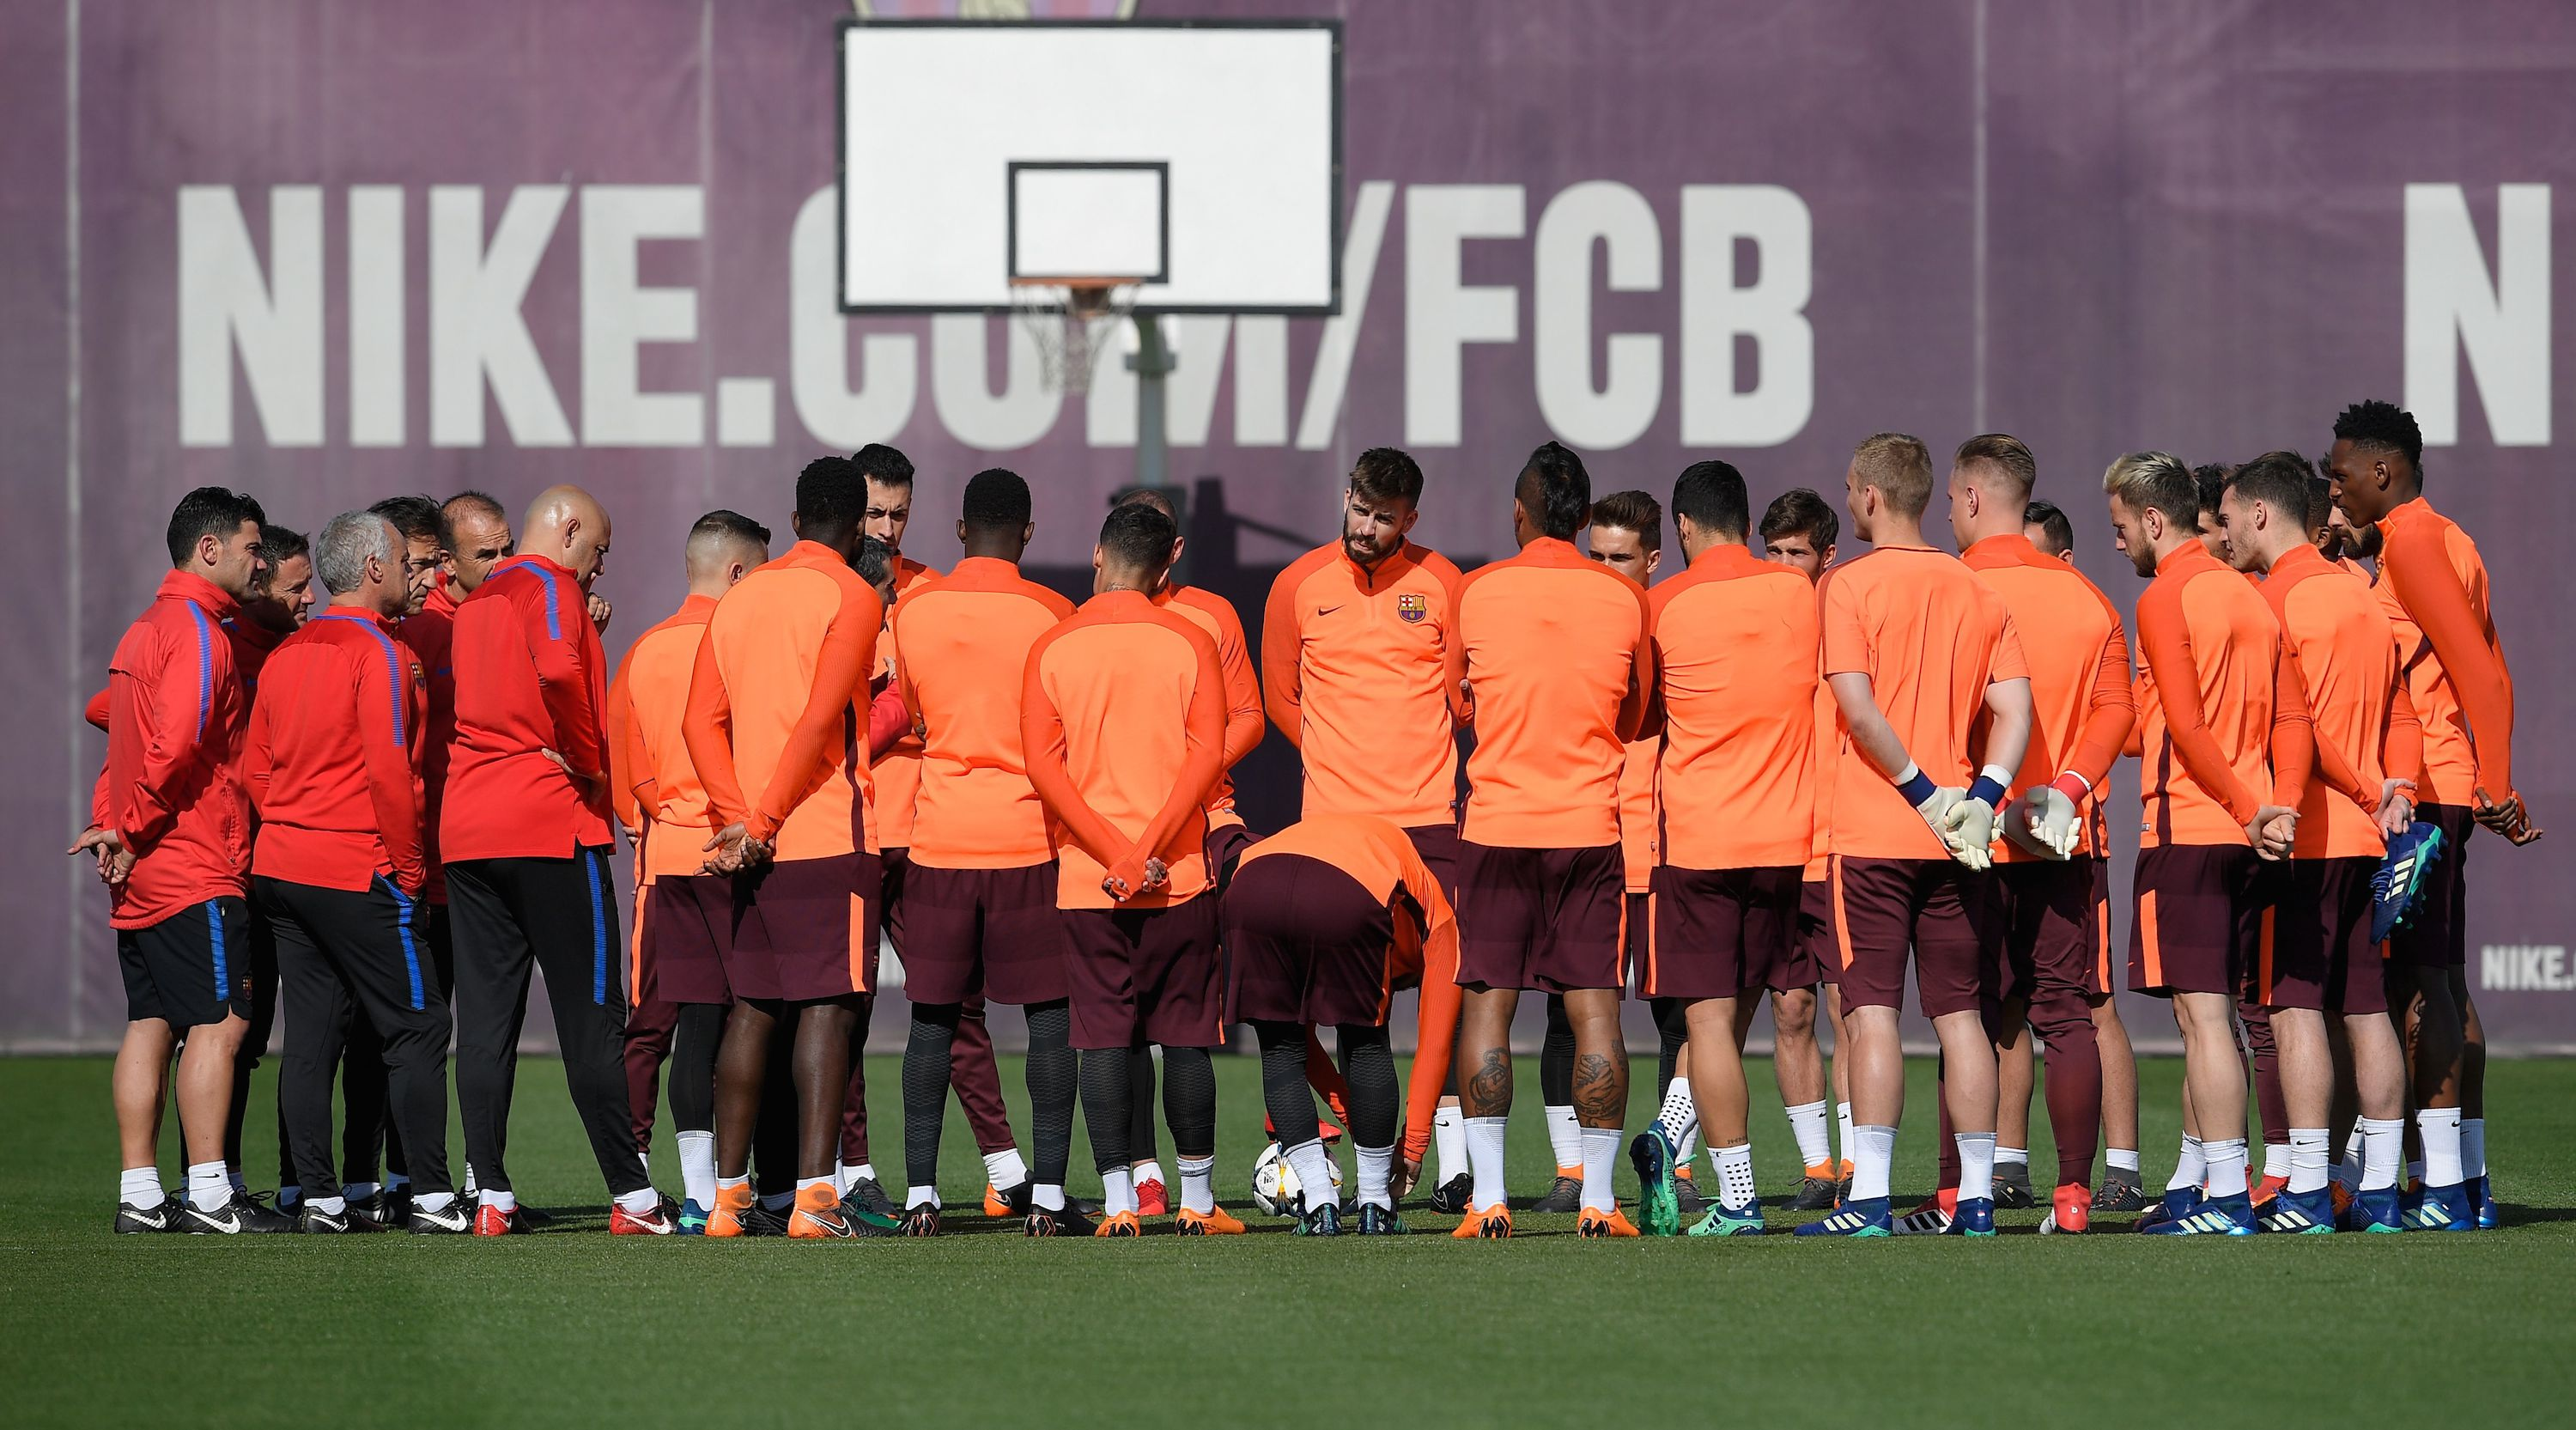 Barcelona's players listen to Barcelona's coach Ernesto Valverde (C) during a training session at the Joan Gamper Sports Center in Sant Joan Despi near Barcelona on April 3, 2018 on the eve the UEFA Champions League quarter-final first leg football match between Barcelona and AS Roma. / AFP PHOTO / LLUIS GENE (Photo credit should read LLUIS GENE/AFP/Getty Images)